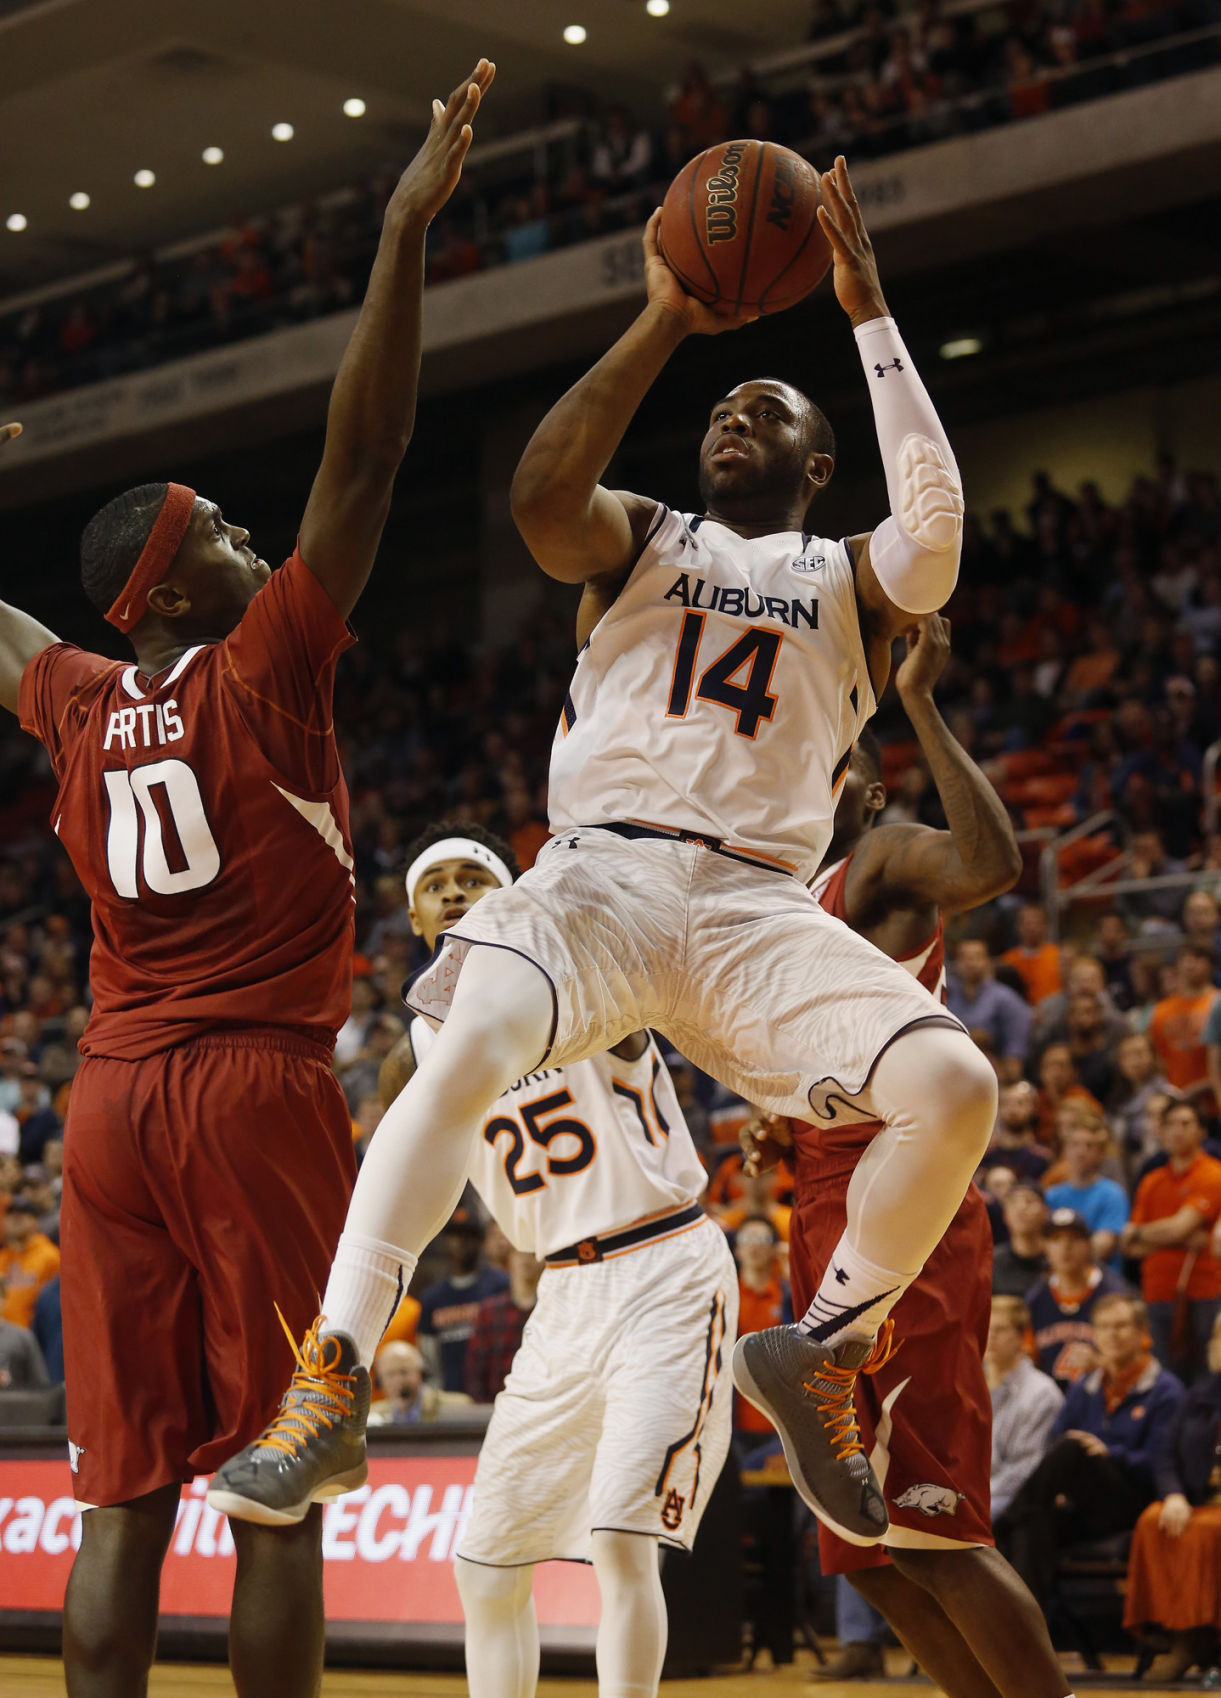 Antoine Mason carrying on for ailing father, team | Auburn ...